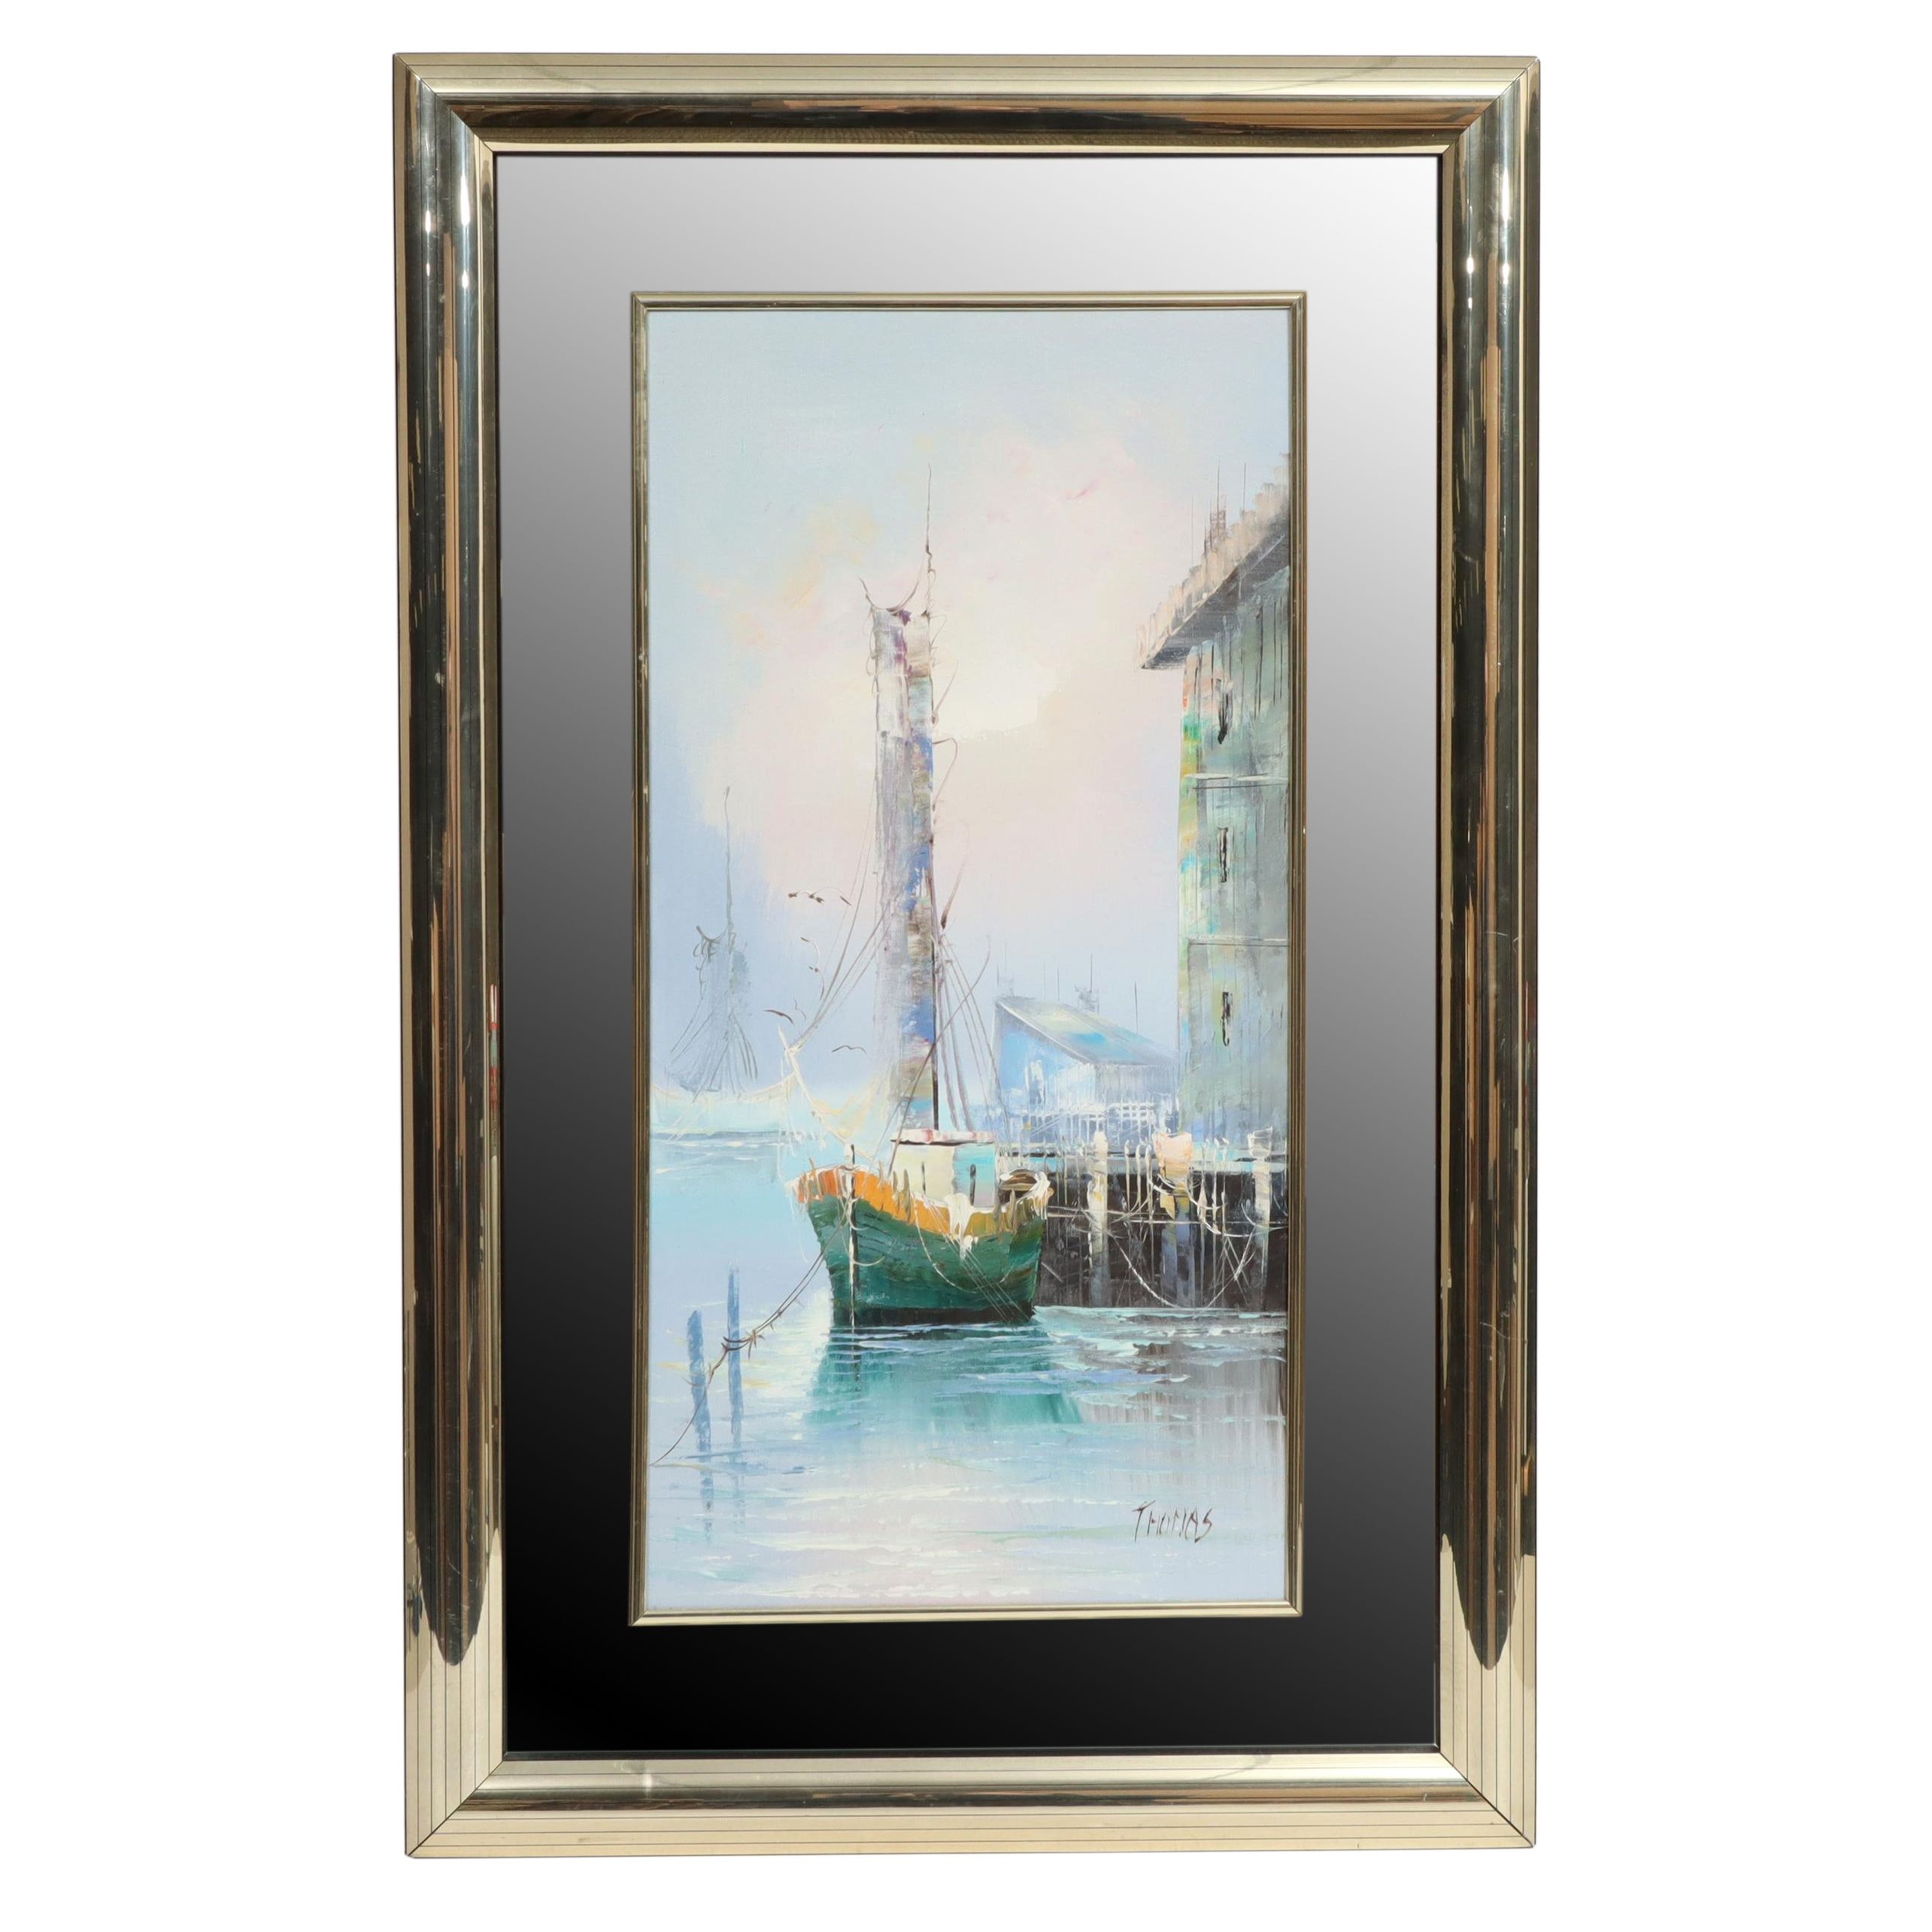 Thomas Oil Painting of a Harbor